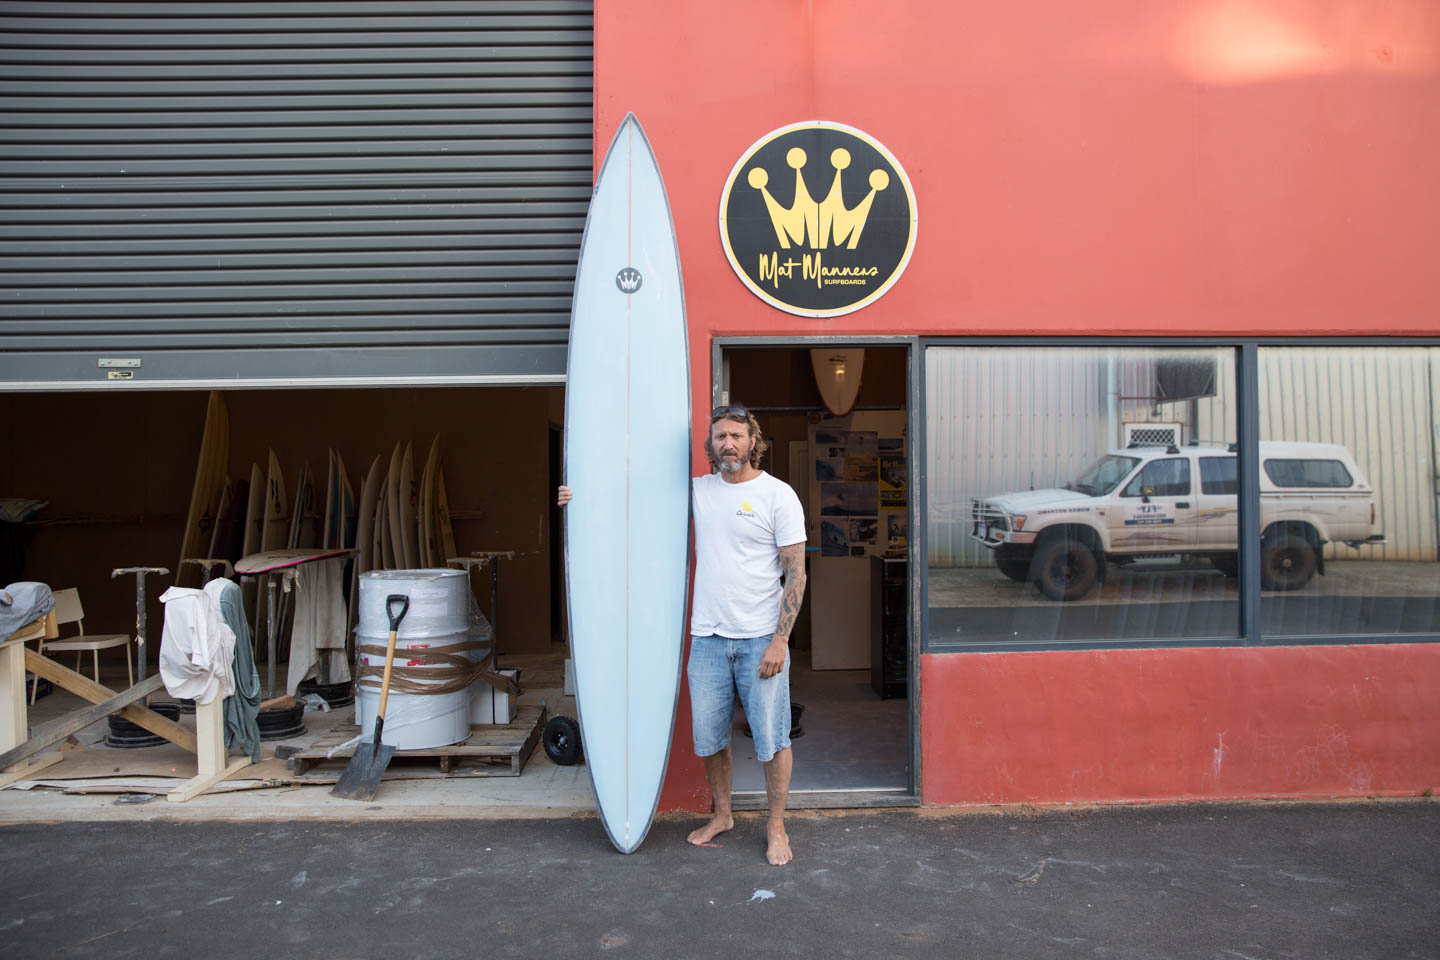 Matt Manners surf shaper